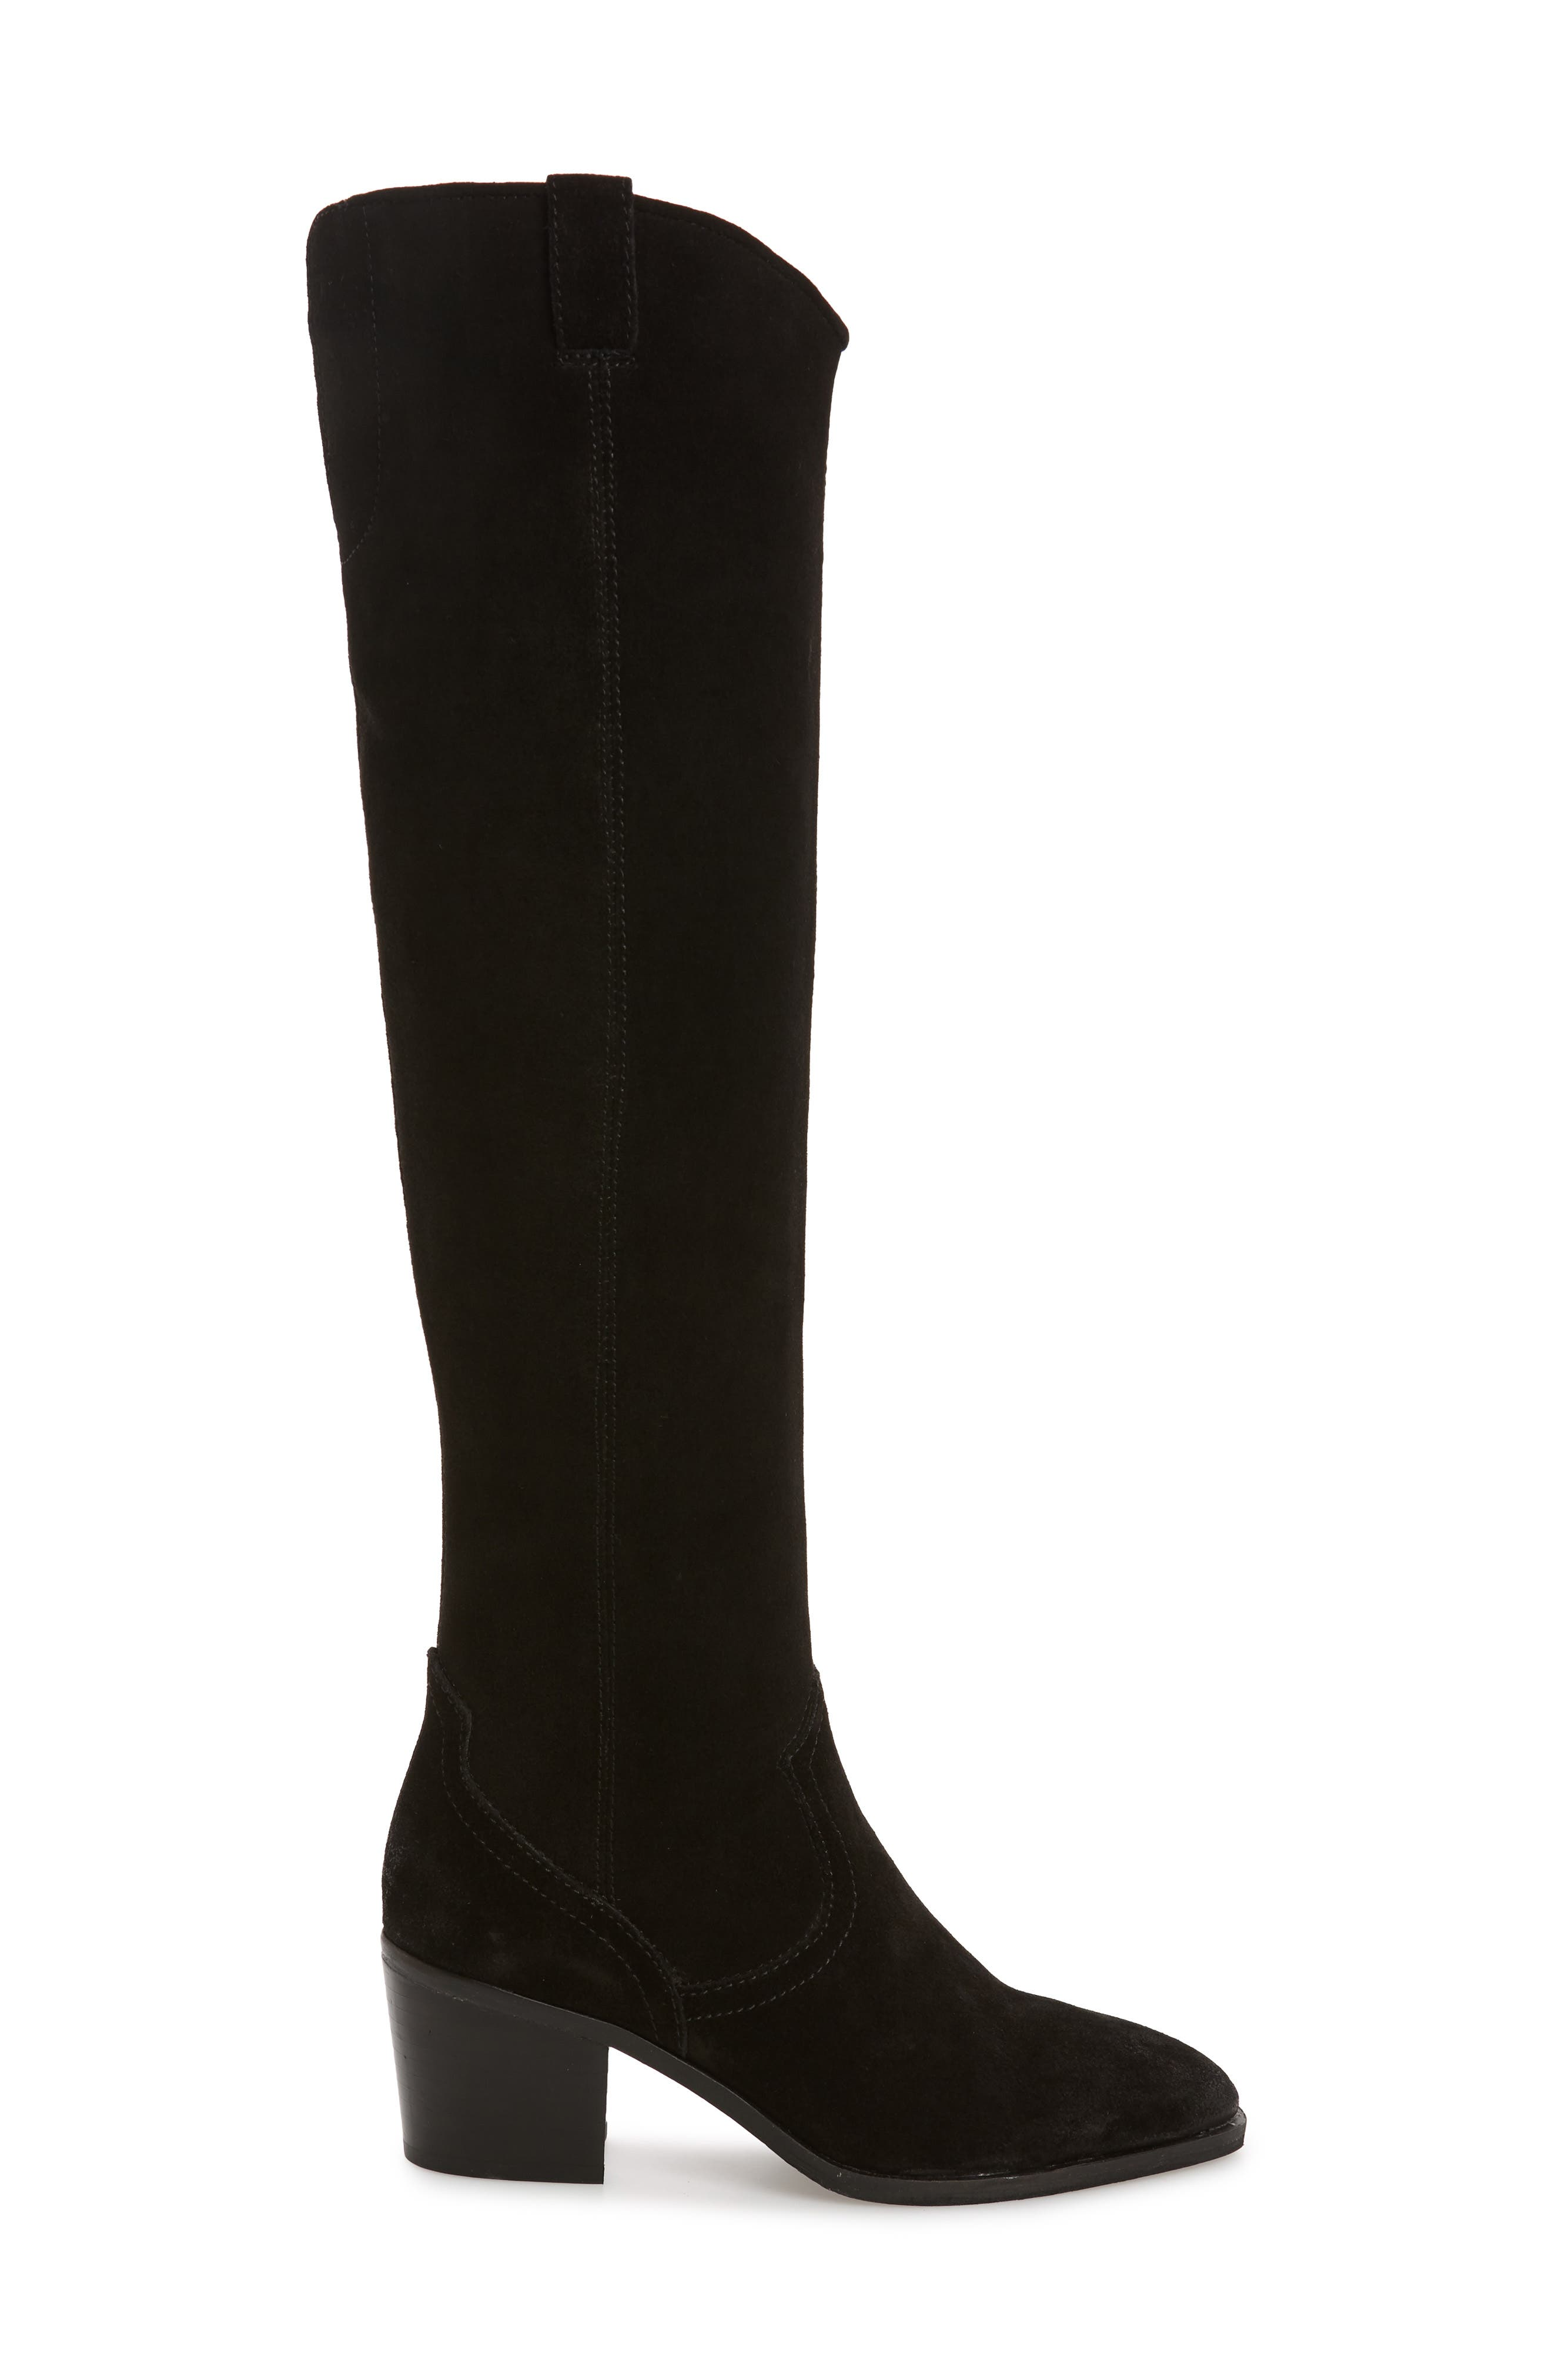 Delano Over the Knee Boot,                             Alternate thumbnail 3, color,                             BLACK LEATHER